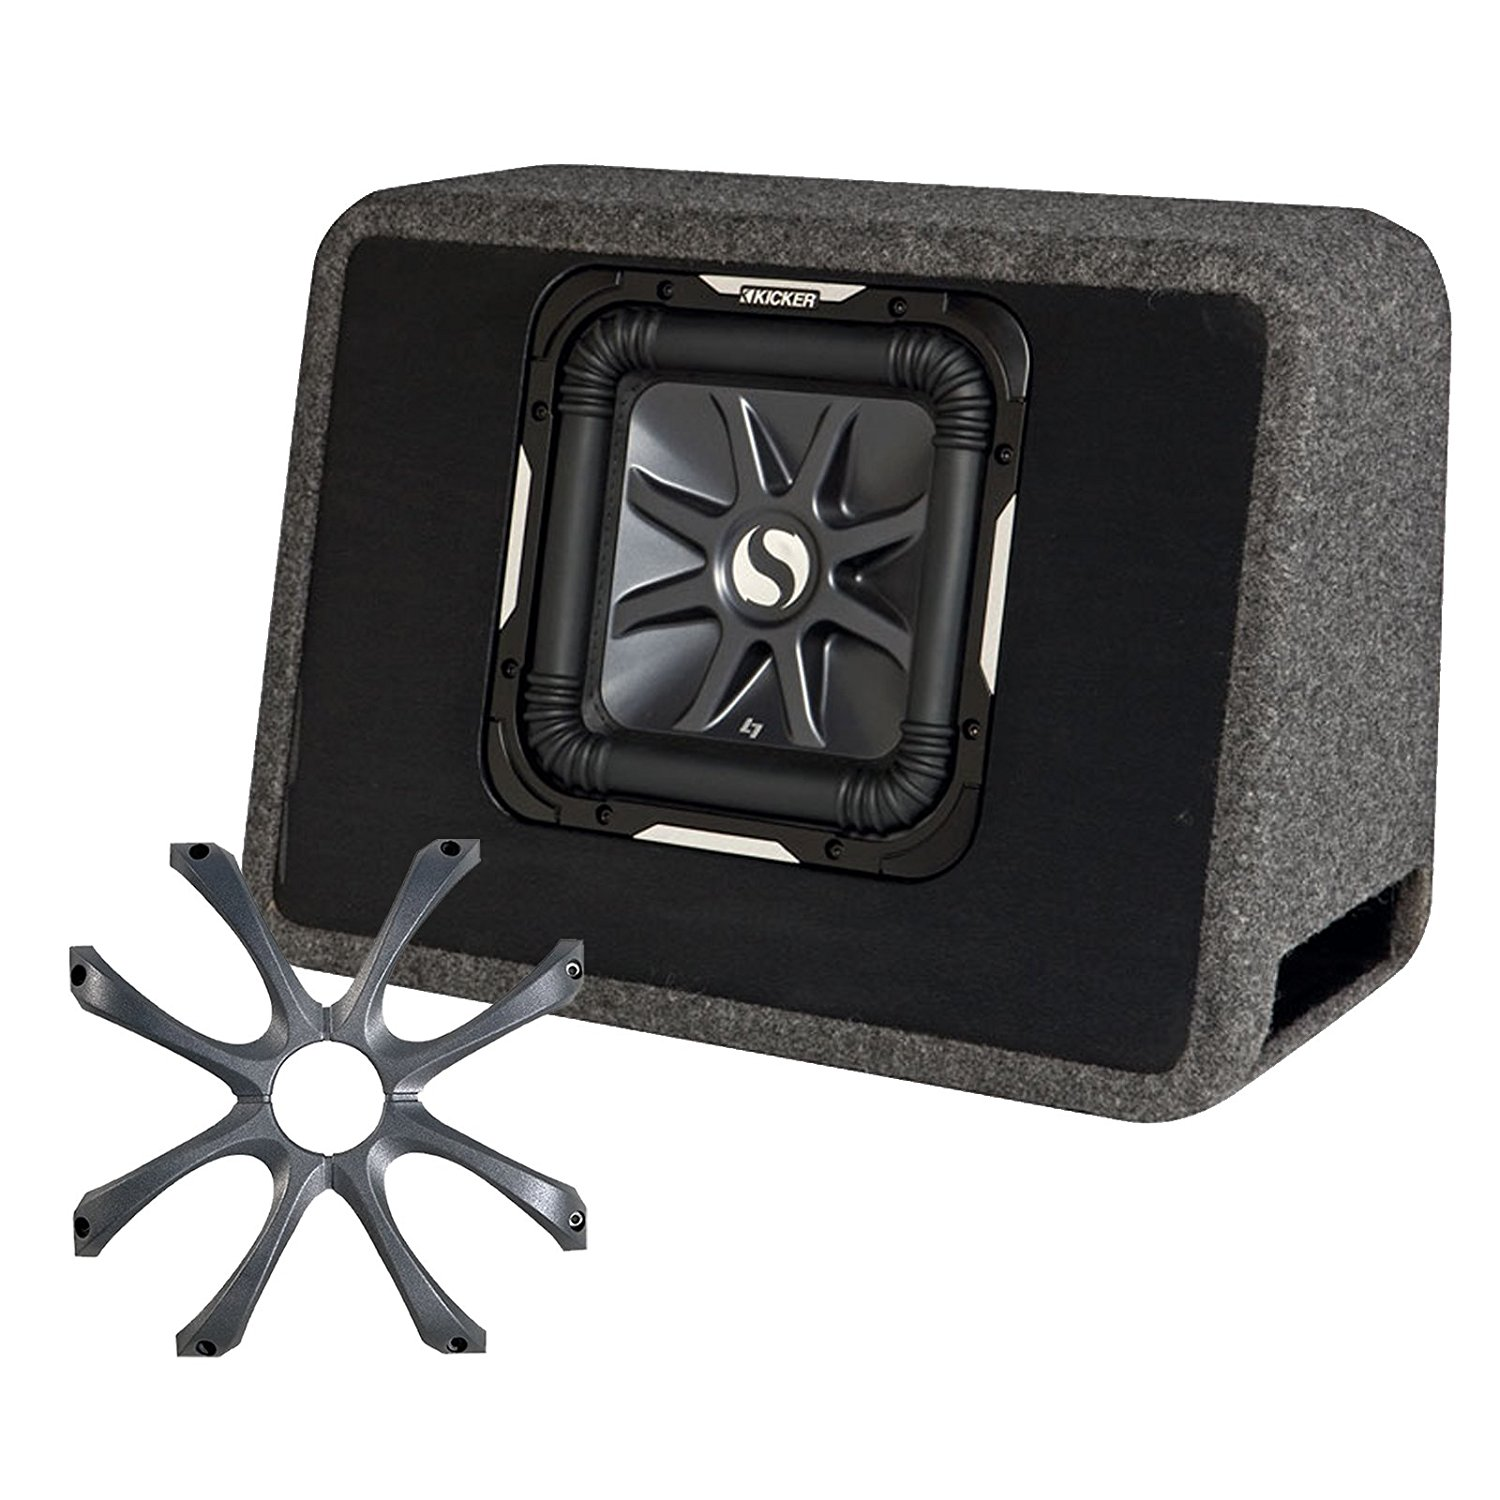 Buy Kicker Ts10l72 11ts10l72 10 Angled Vented Sub Enclosure With 1 Subwoofer 15 Inch Solo Baric